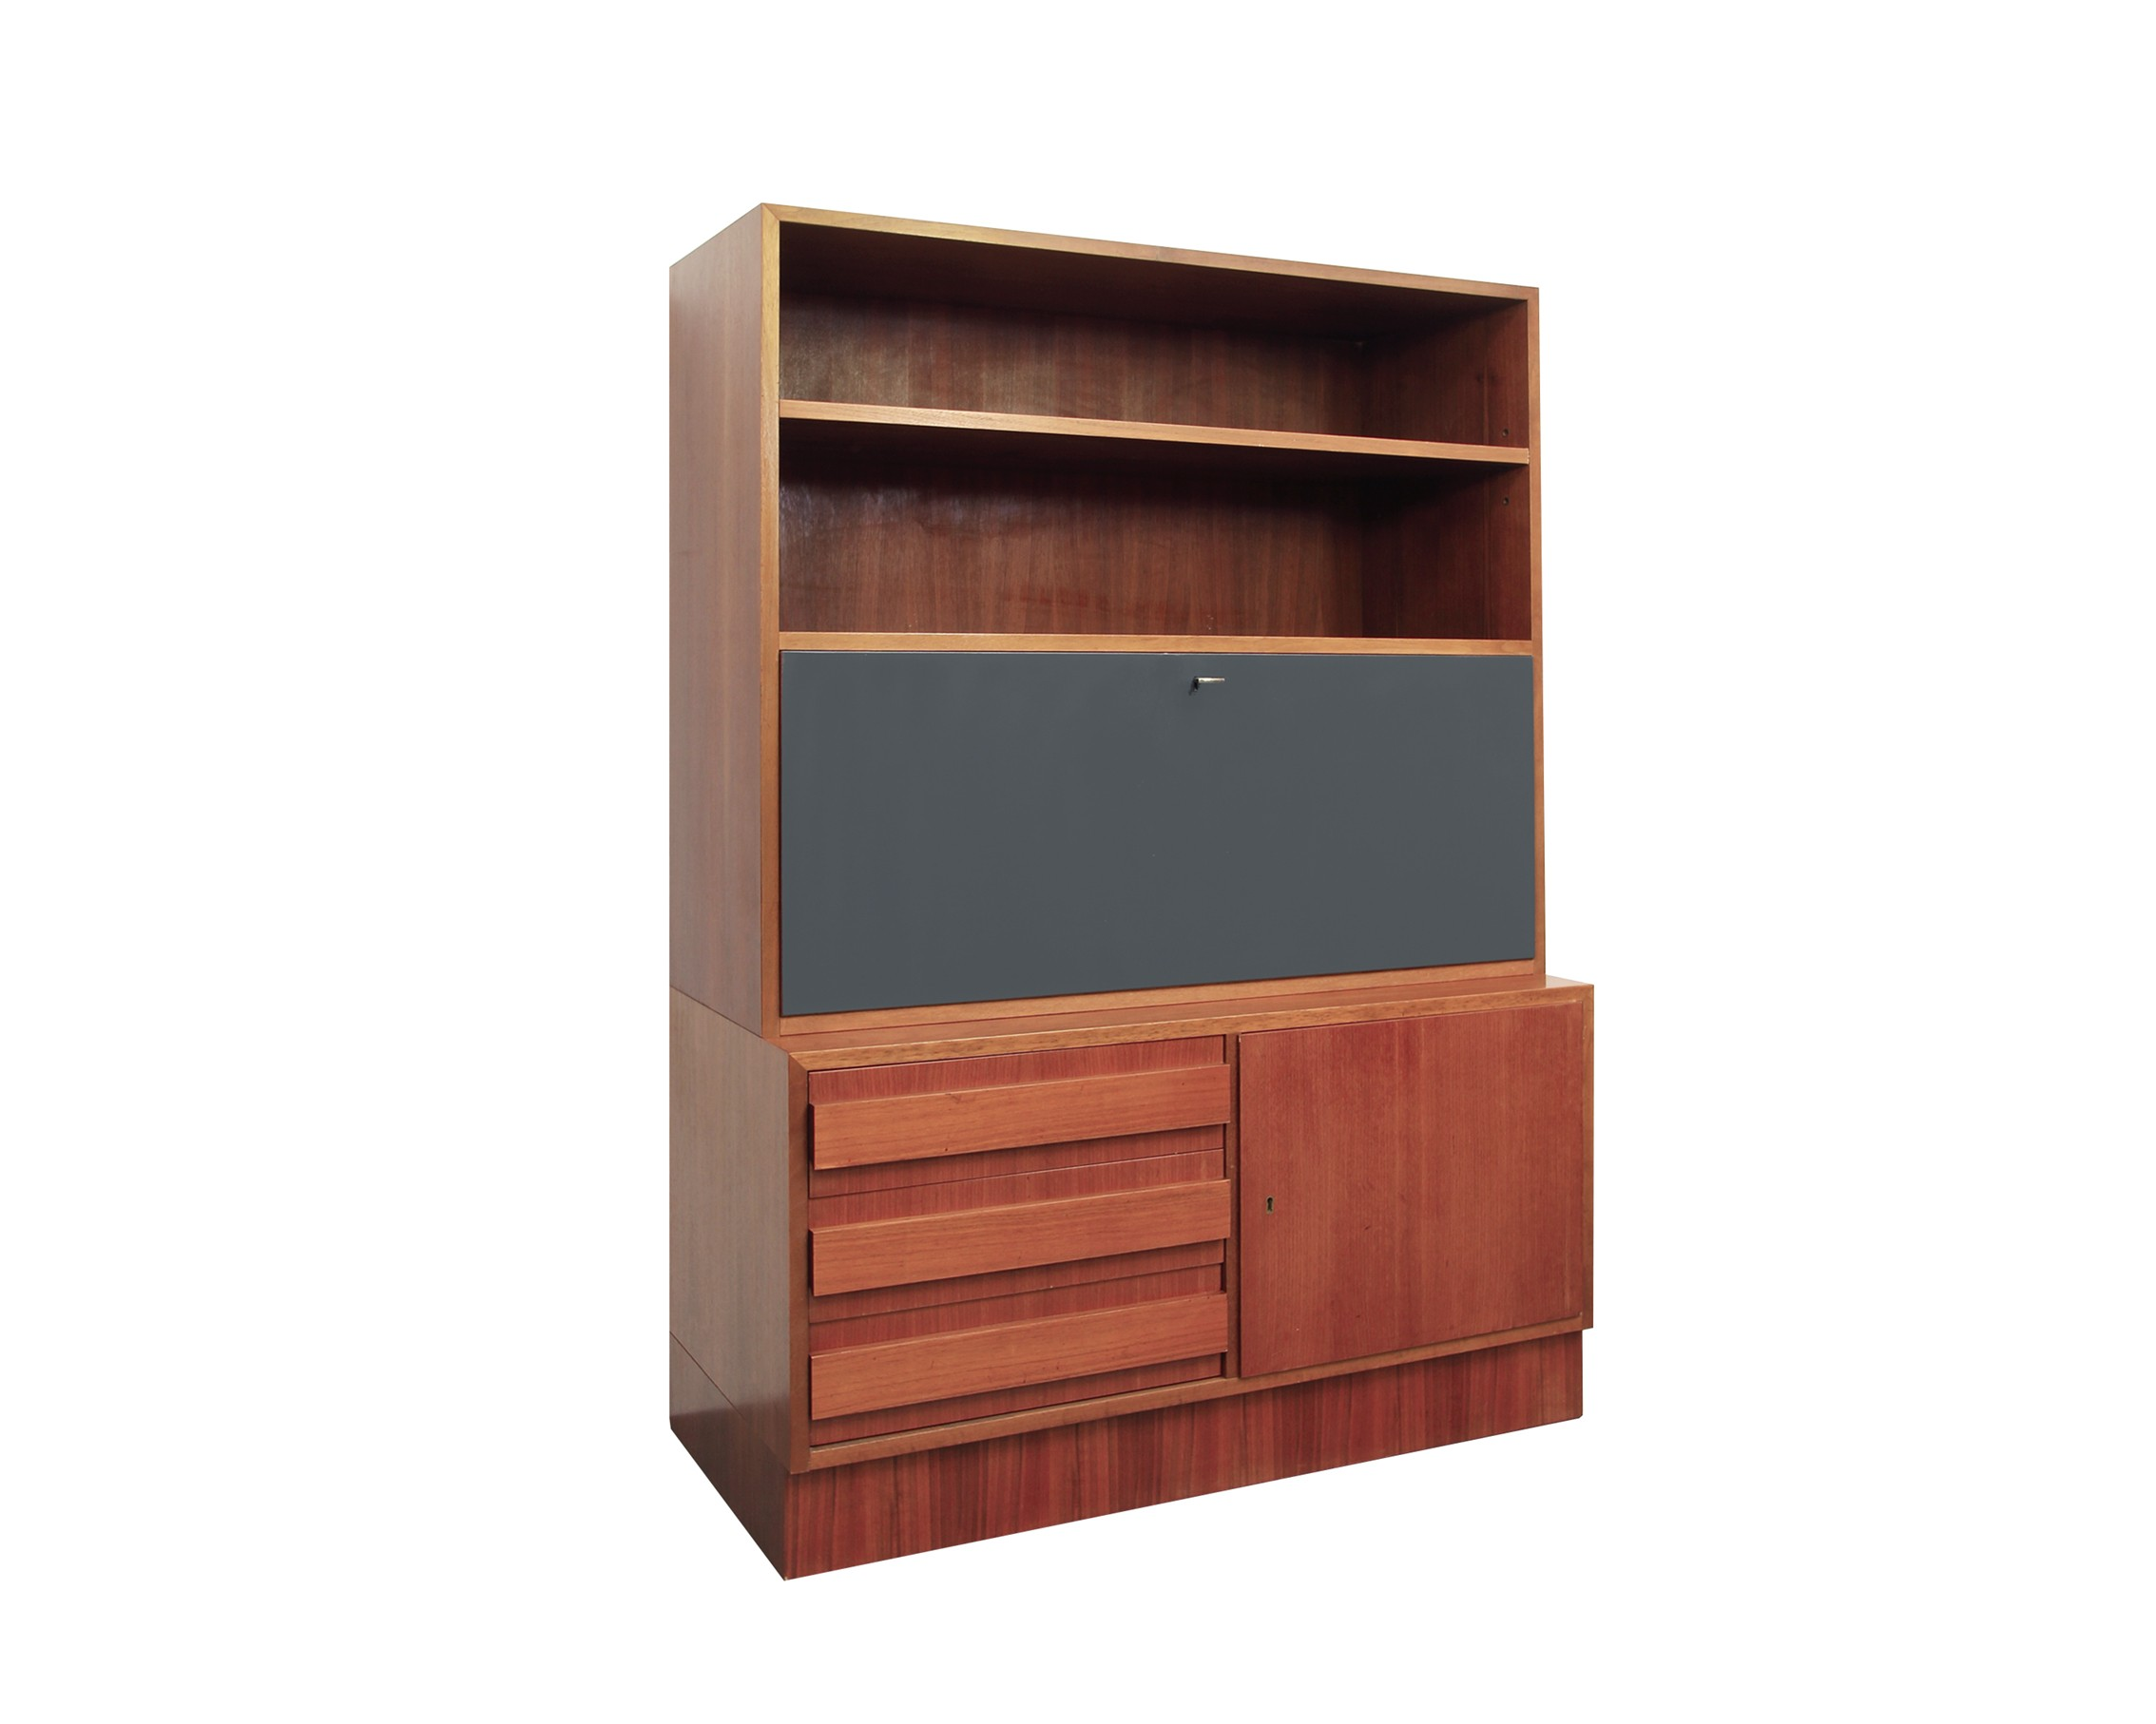 Container Furniture With Bar Case 1960s Design Market # Meuble Container